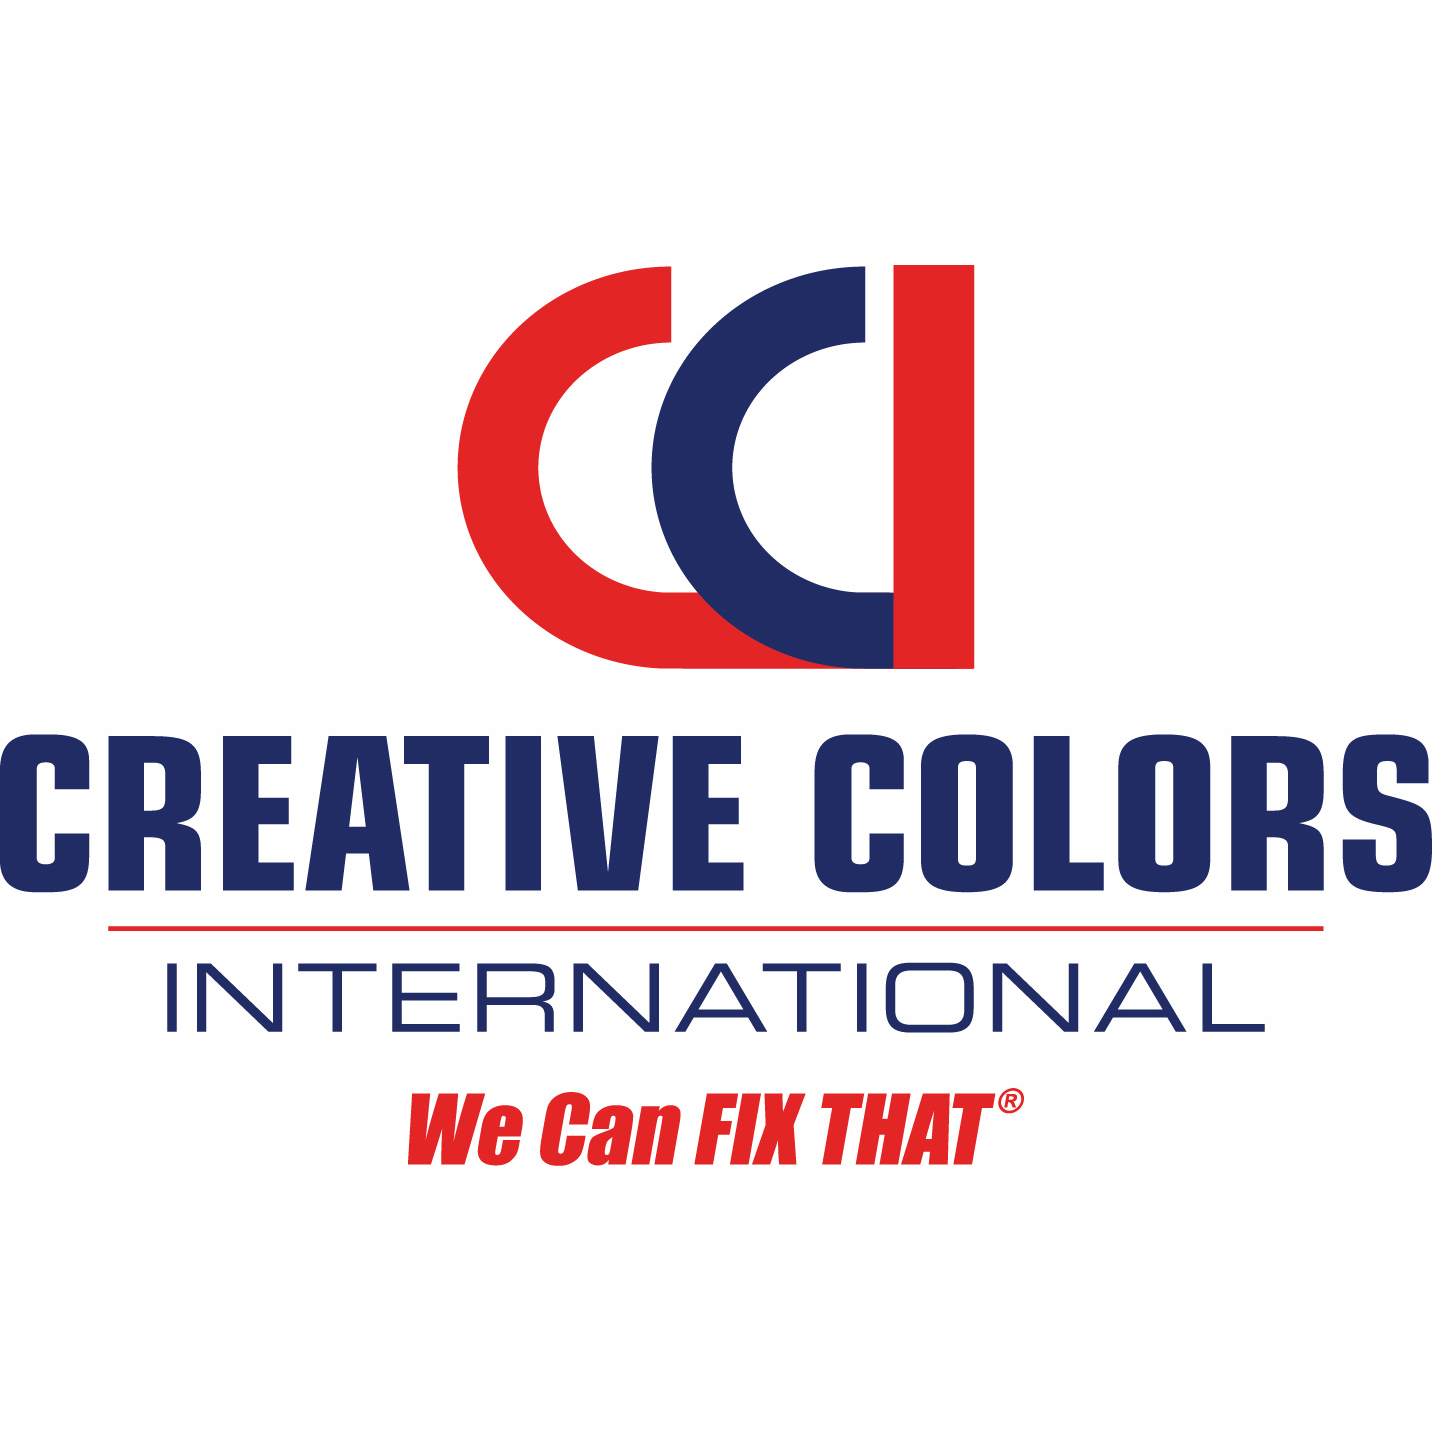 Creative Colors International-We Can Fix That - Commerce City CO